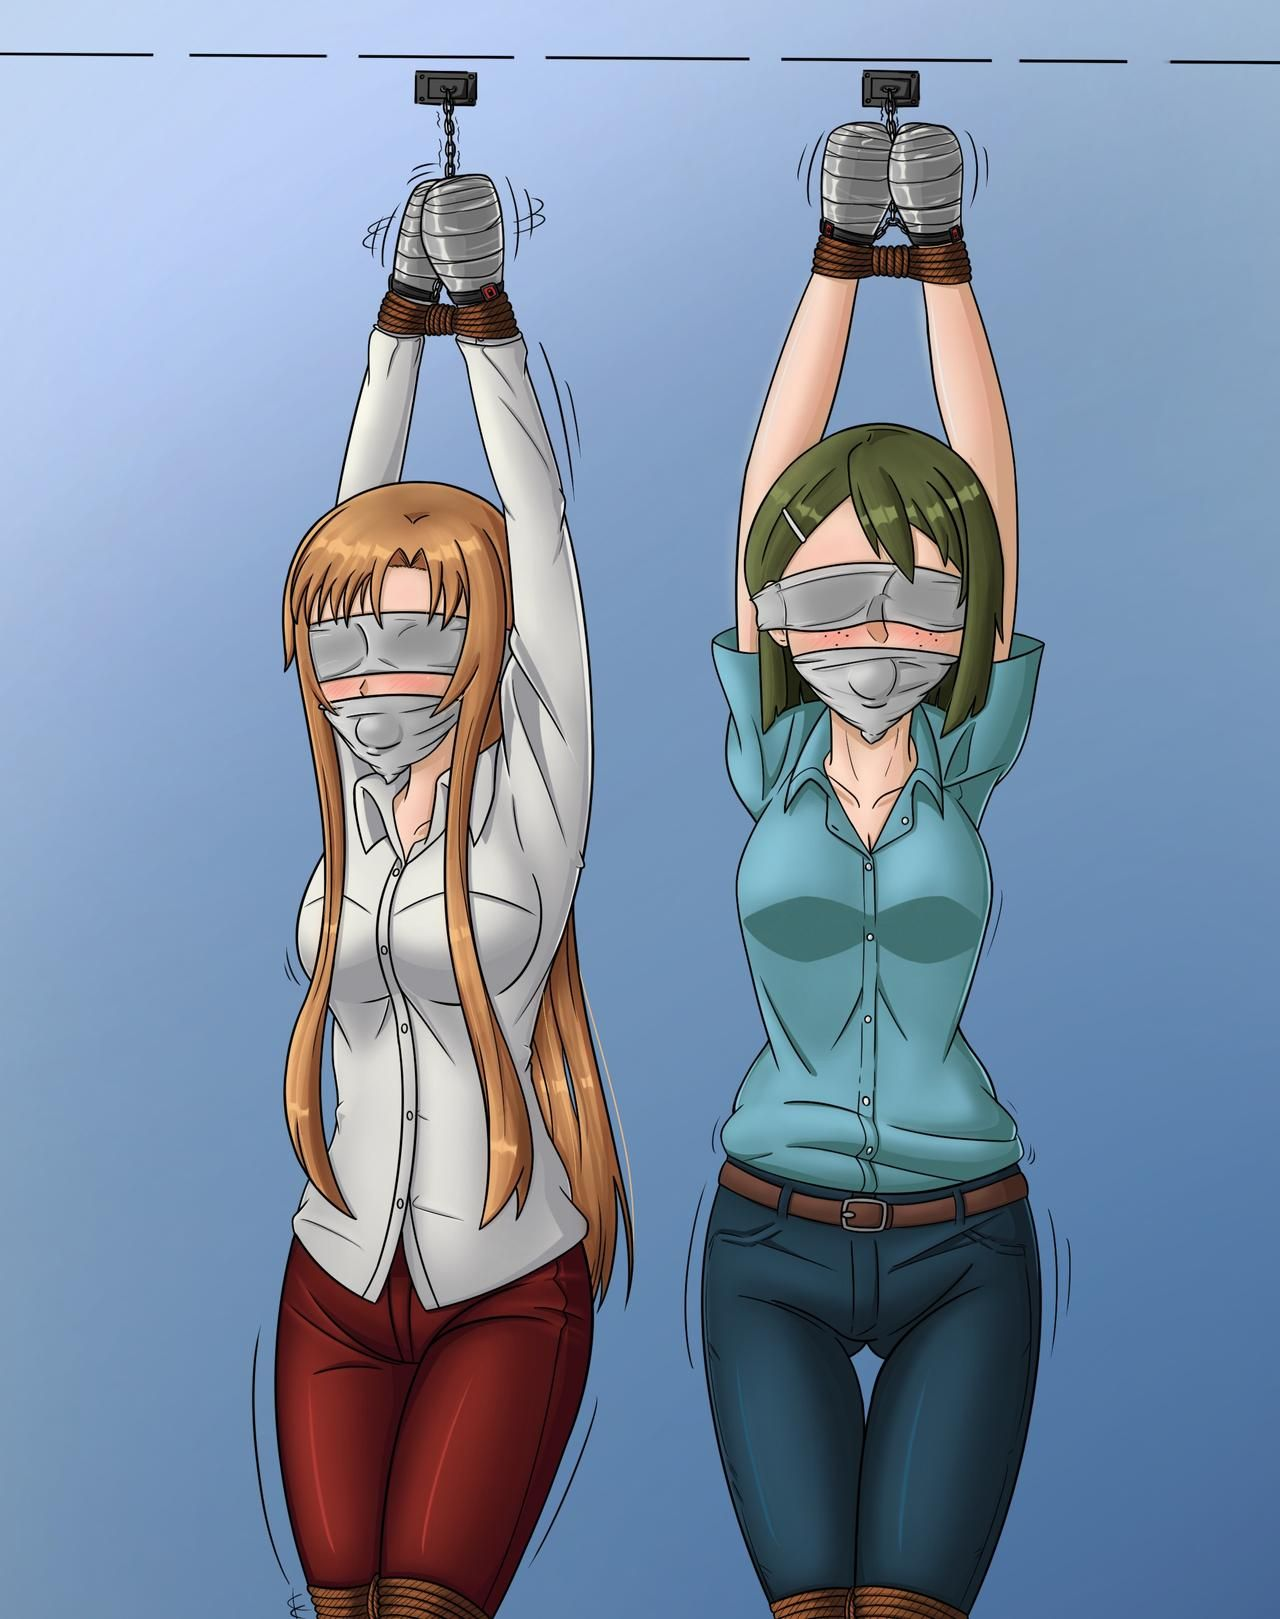 COLLAB : SAO Asuna and Rinko Part 3 by nathanhale1992 on